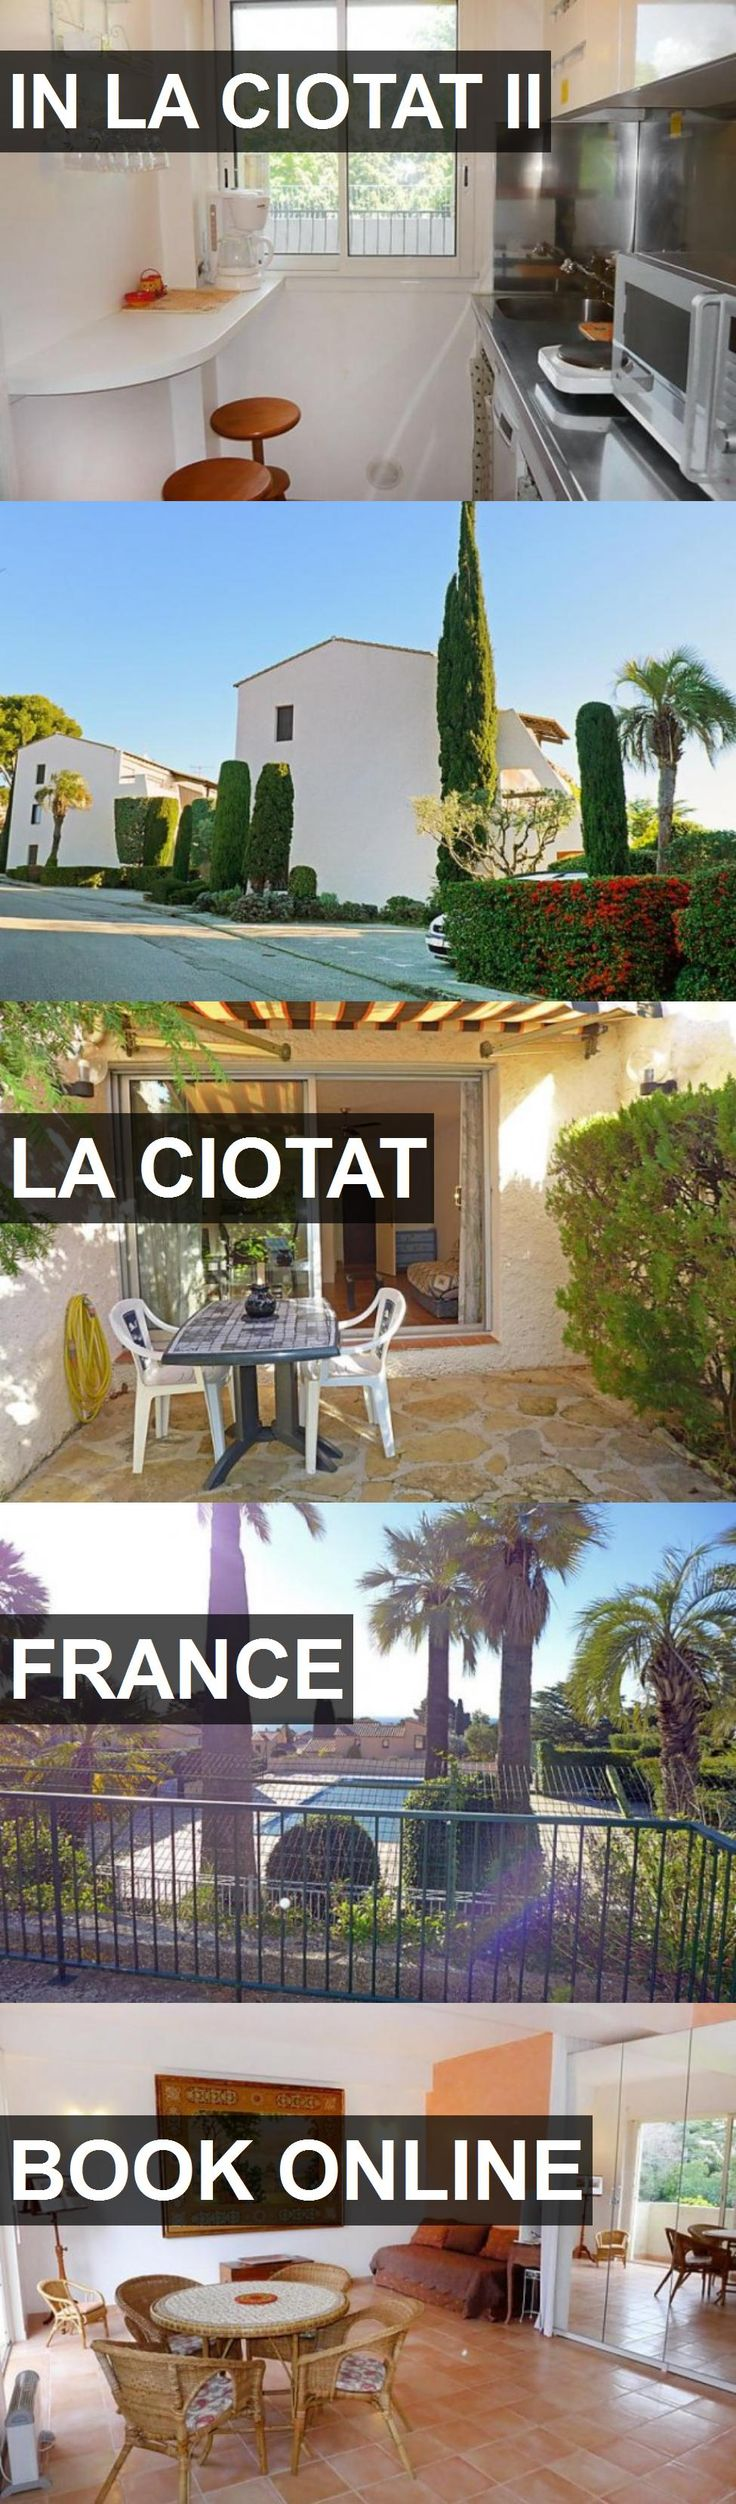 Hotel IN LA CIOTAT II in La Ciotat, France. For more information, photos, reviews and best prices please follow the link. #France #LaCiotat #travel #vacation #hotel